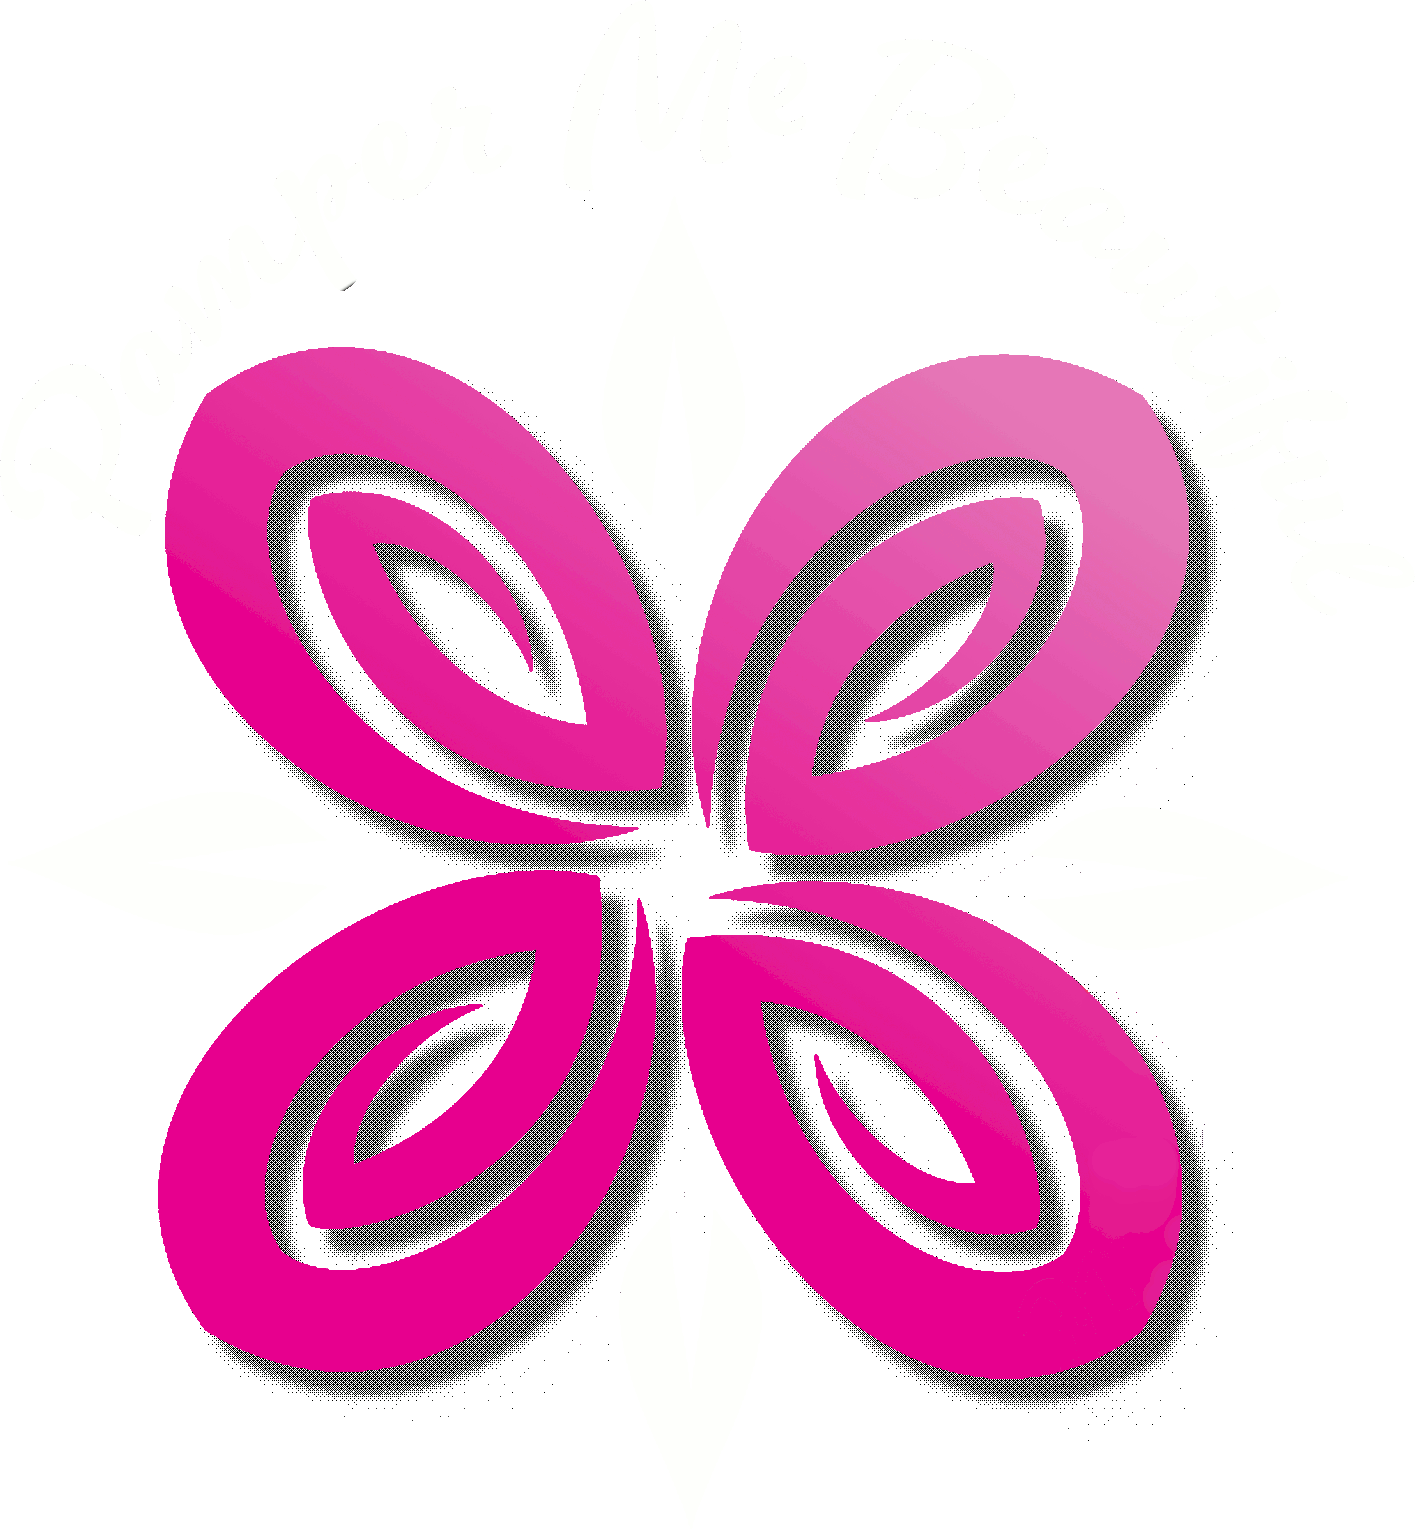 Pamper me beautiful logo and text